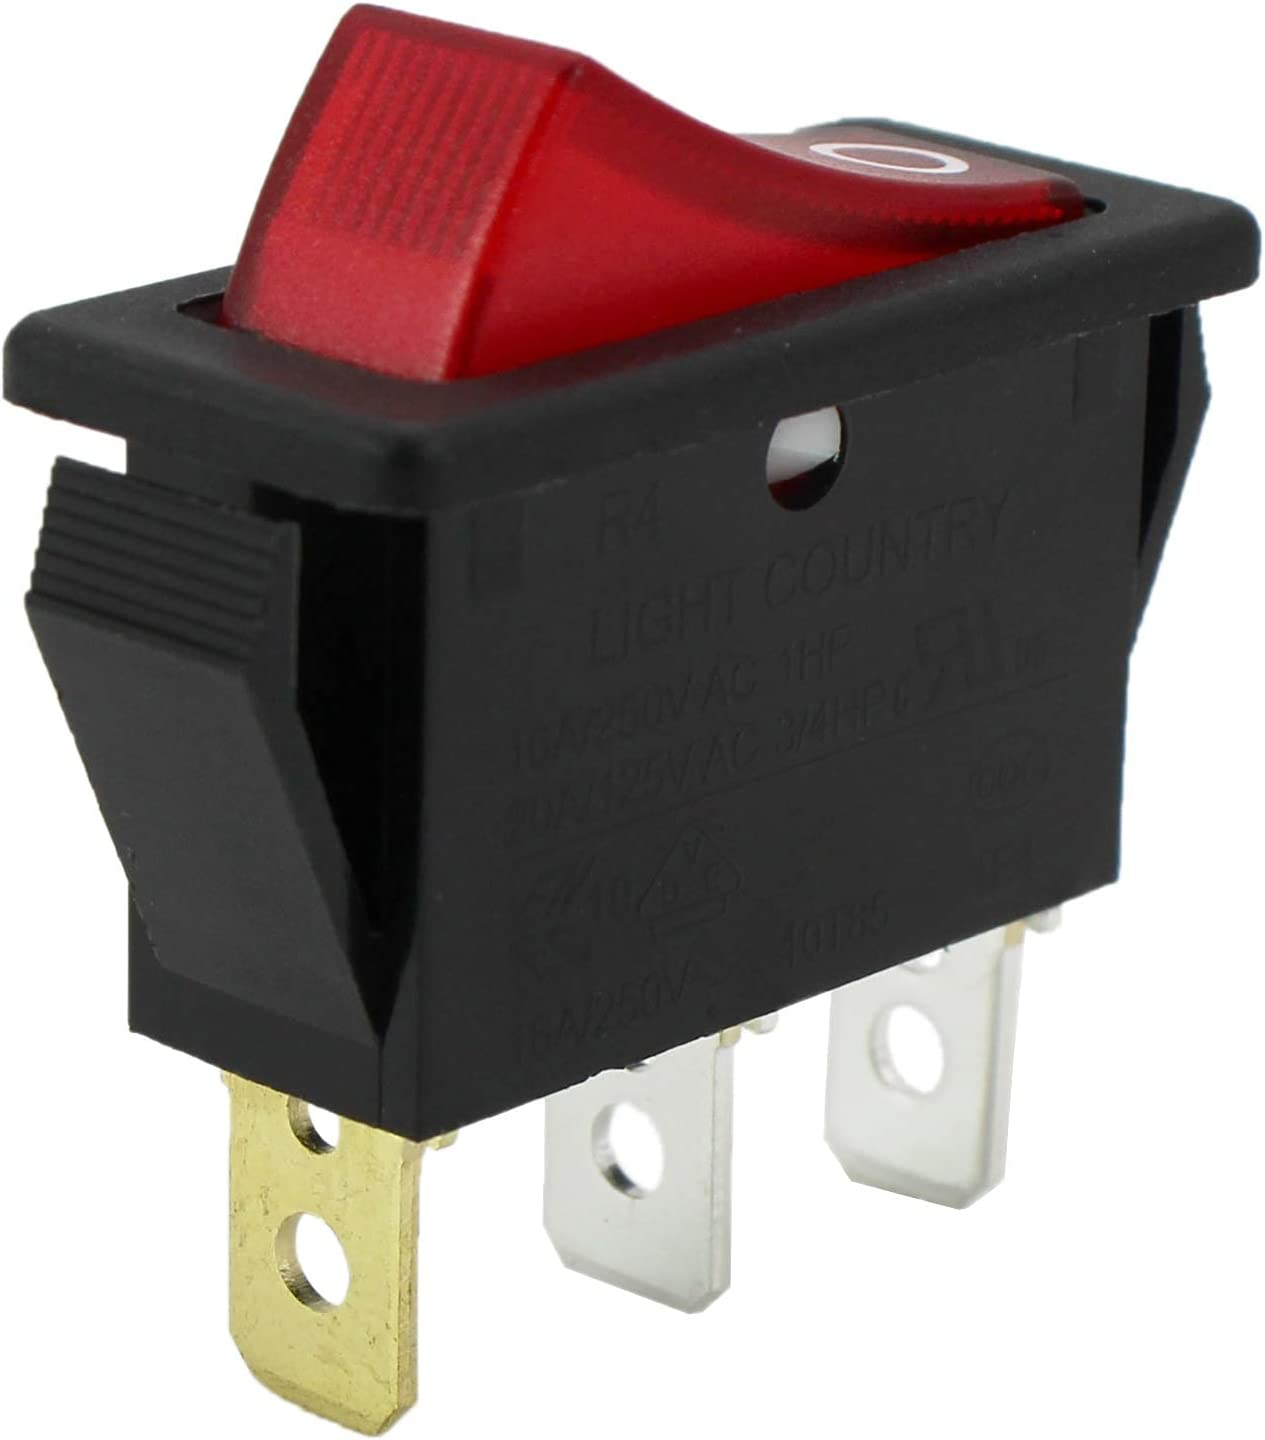 Rocker Switch Lighted On Off for 120927-24 120 Volt FMI Desa Electric Fireplaces